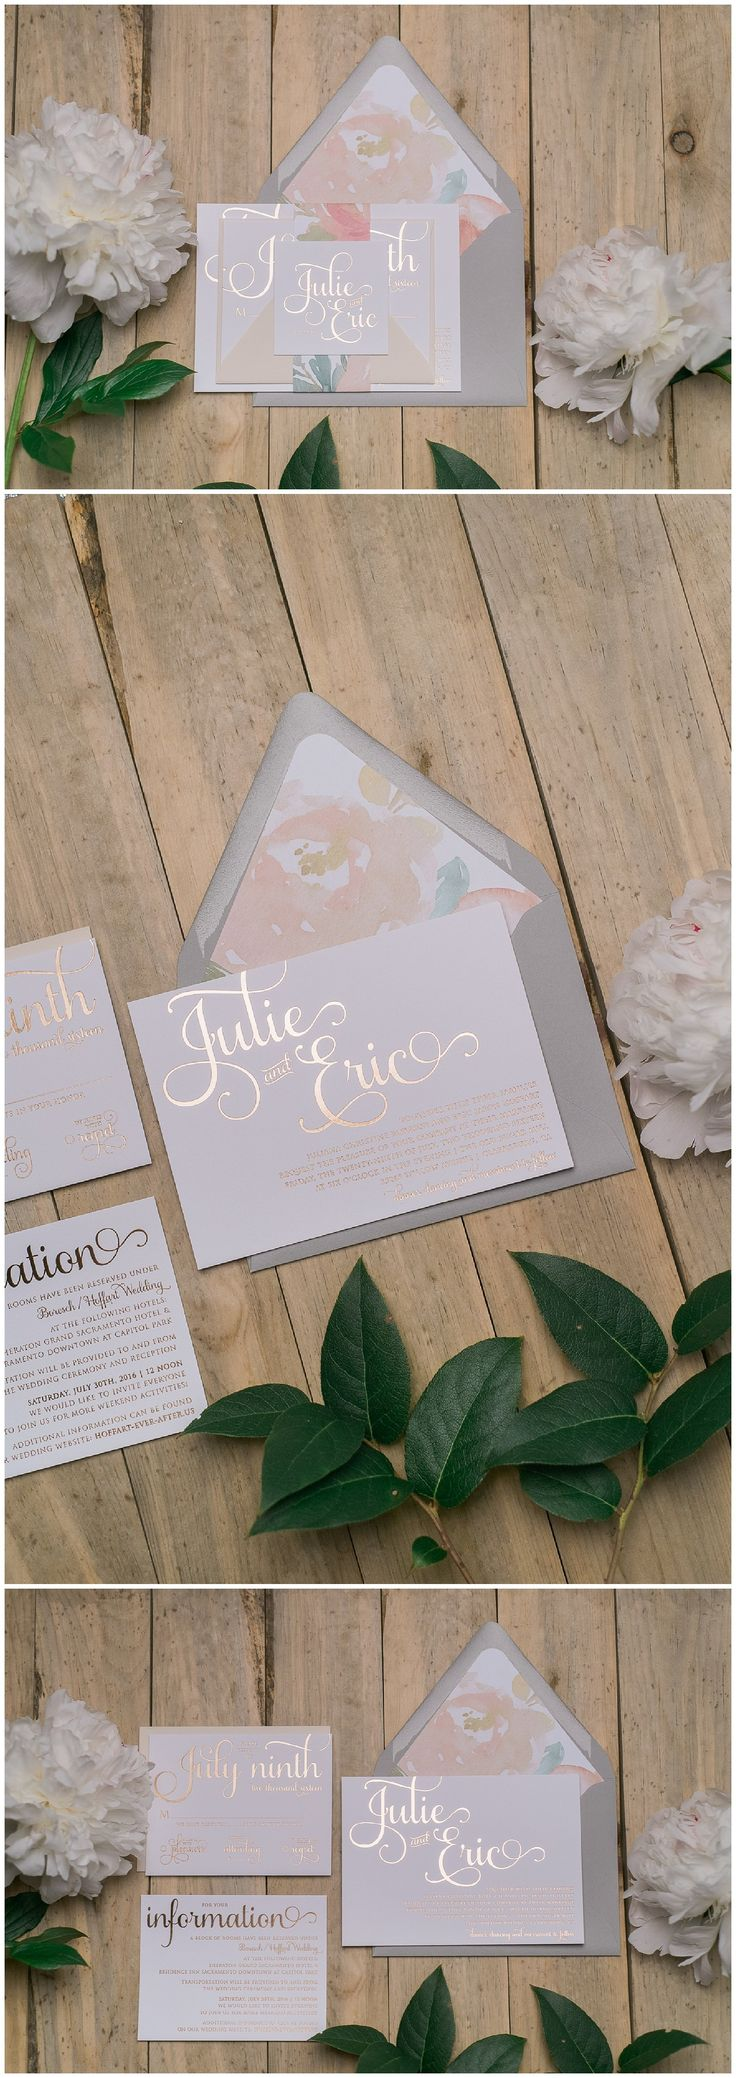 summer wedding invitation wording%0A Real Wedding  Julie and Eric  Floral Wedding StationerySummer Wedding  InvitationsWedding